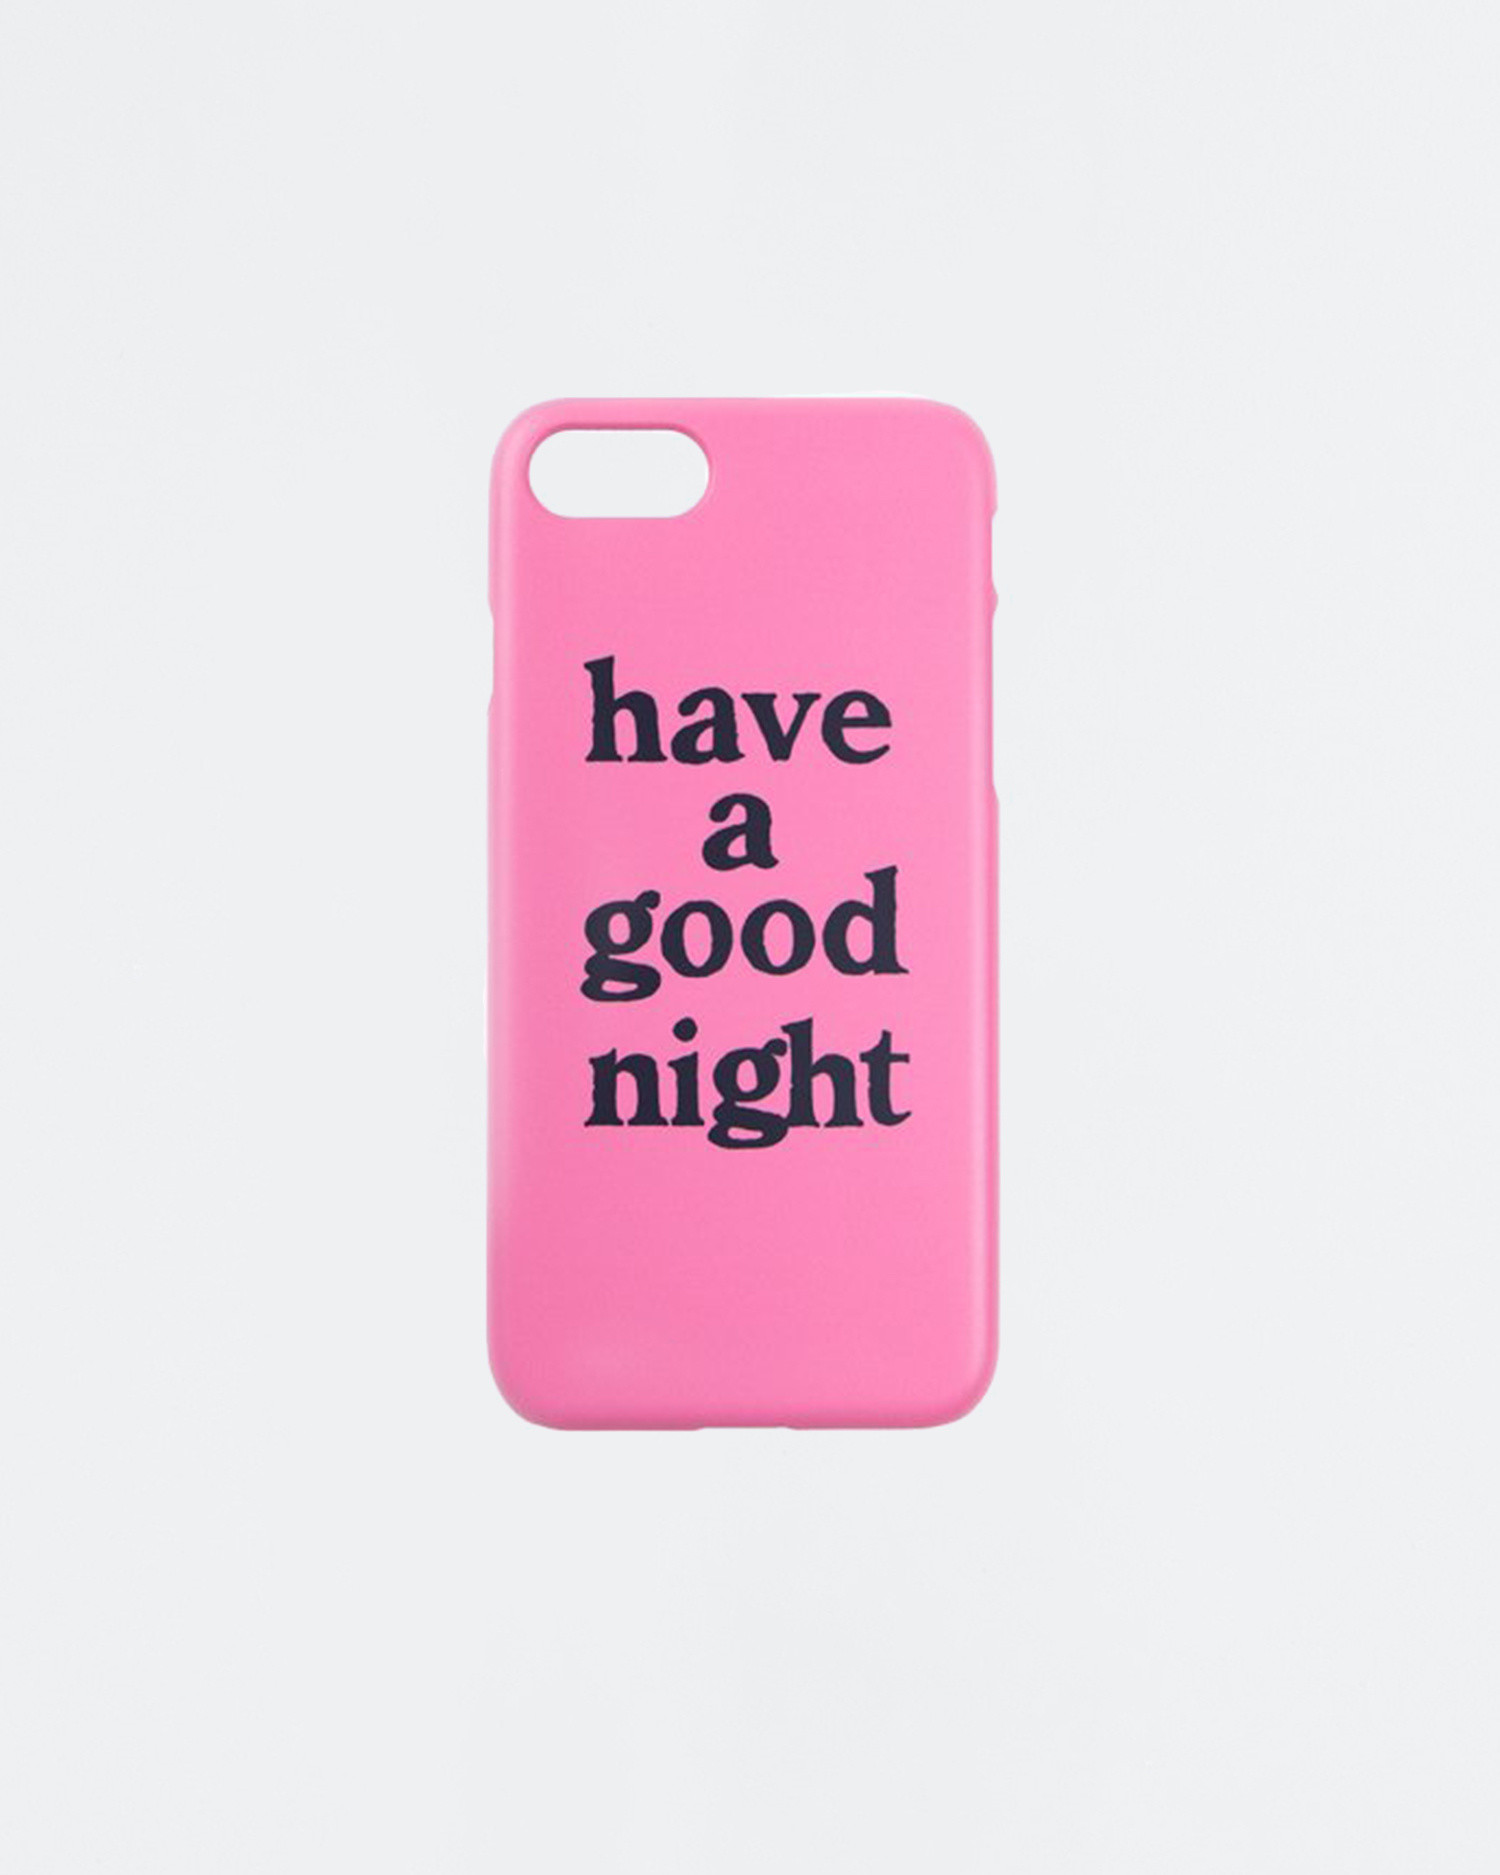 Have A Good Night Iphone Case 7/8